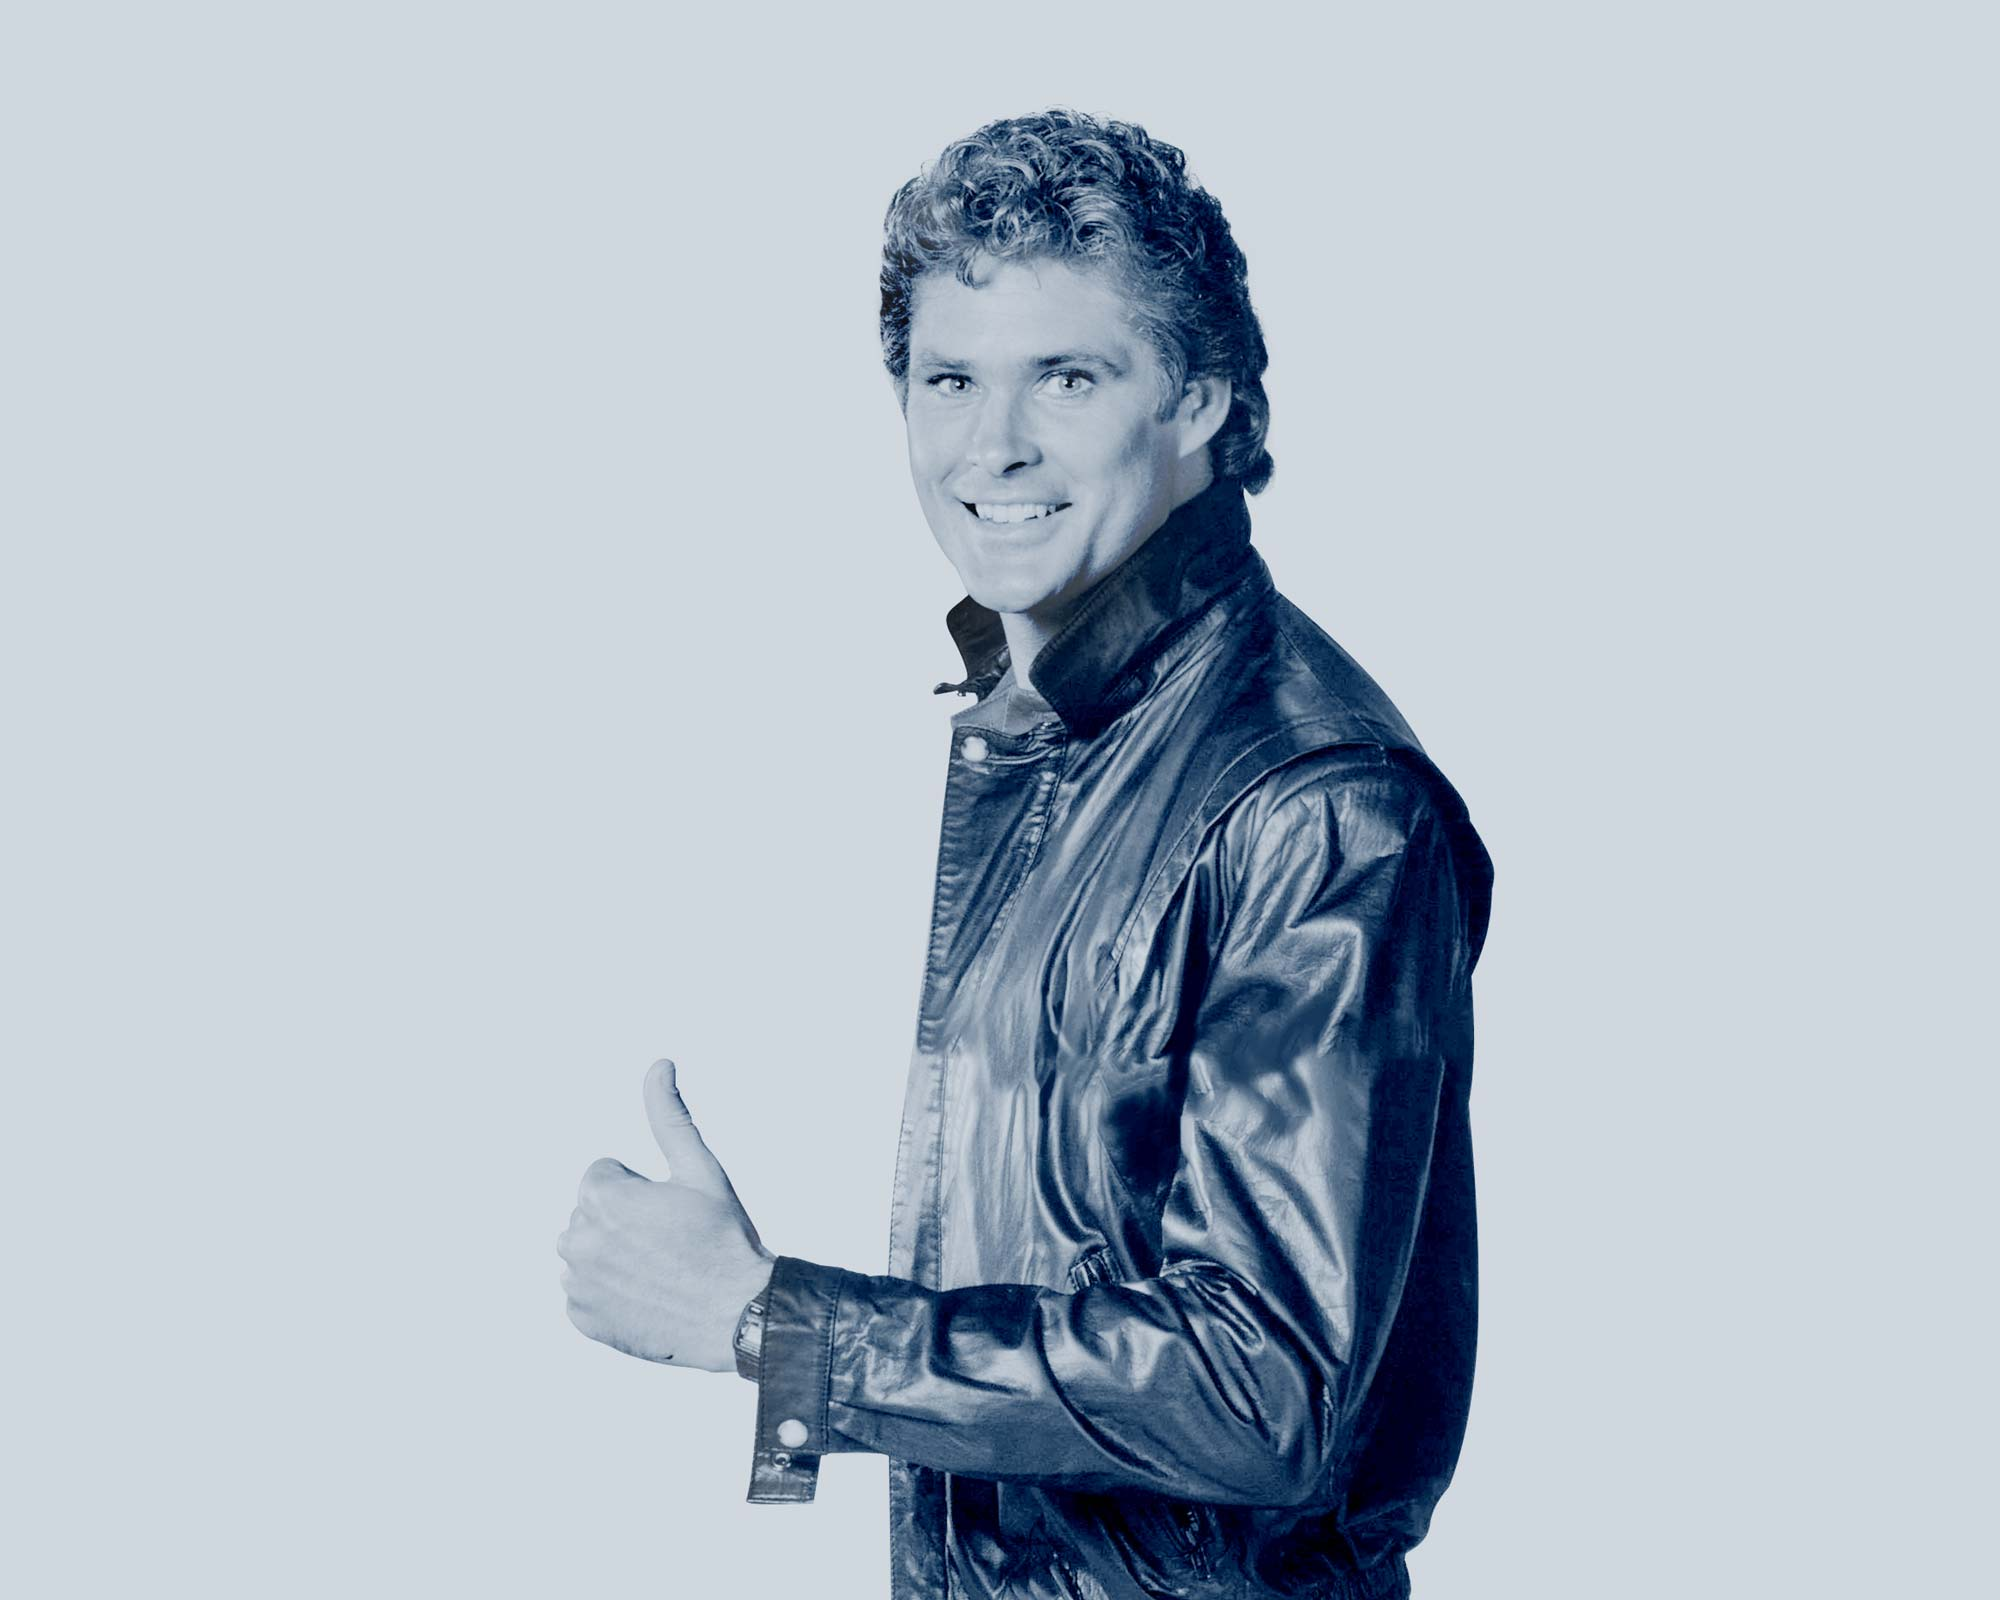 A picture of David Hasselhoff in a leather jacket smiling and looking at the camera with his thumbs up.